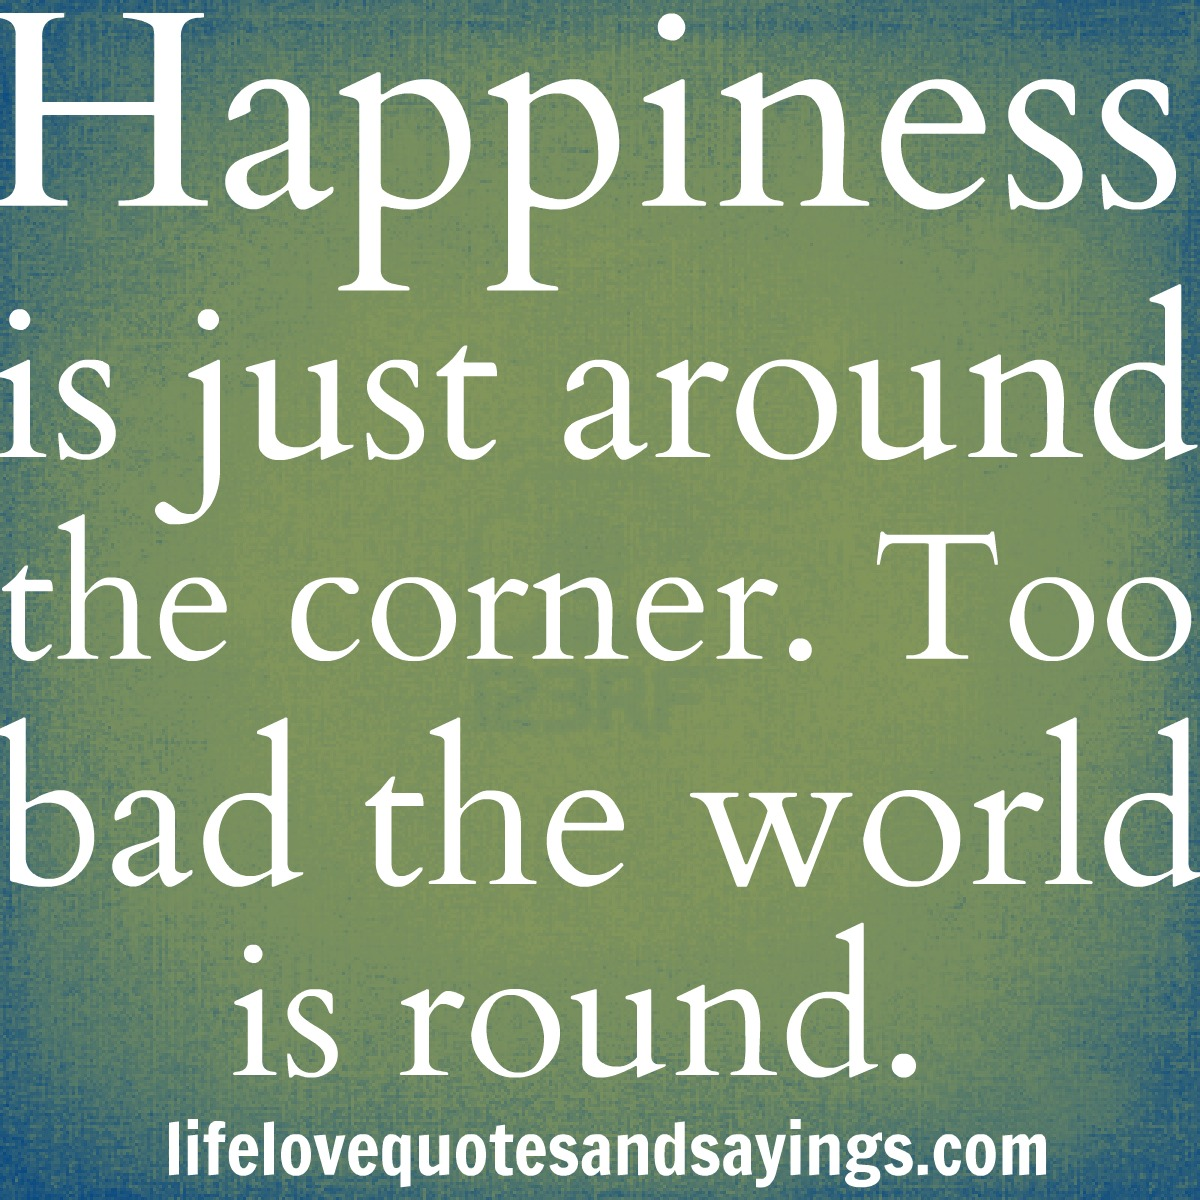 Quotes About Love And Laughter Quotesgram